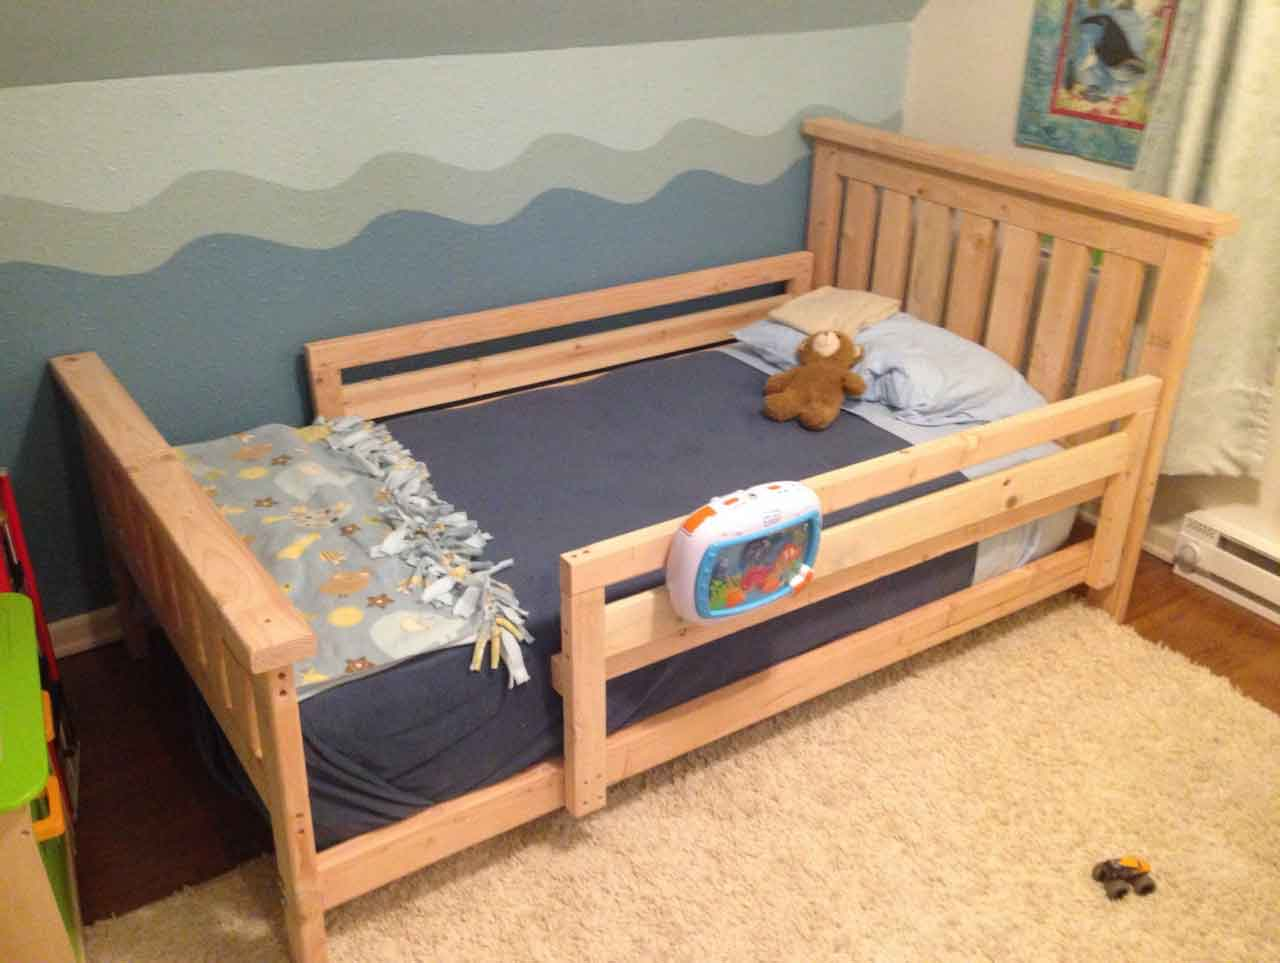 Three Benefit of Using Side Rails for Twin Bed You Should Know | Roy Home Design